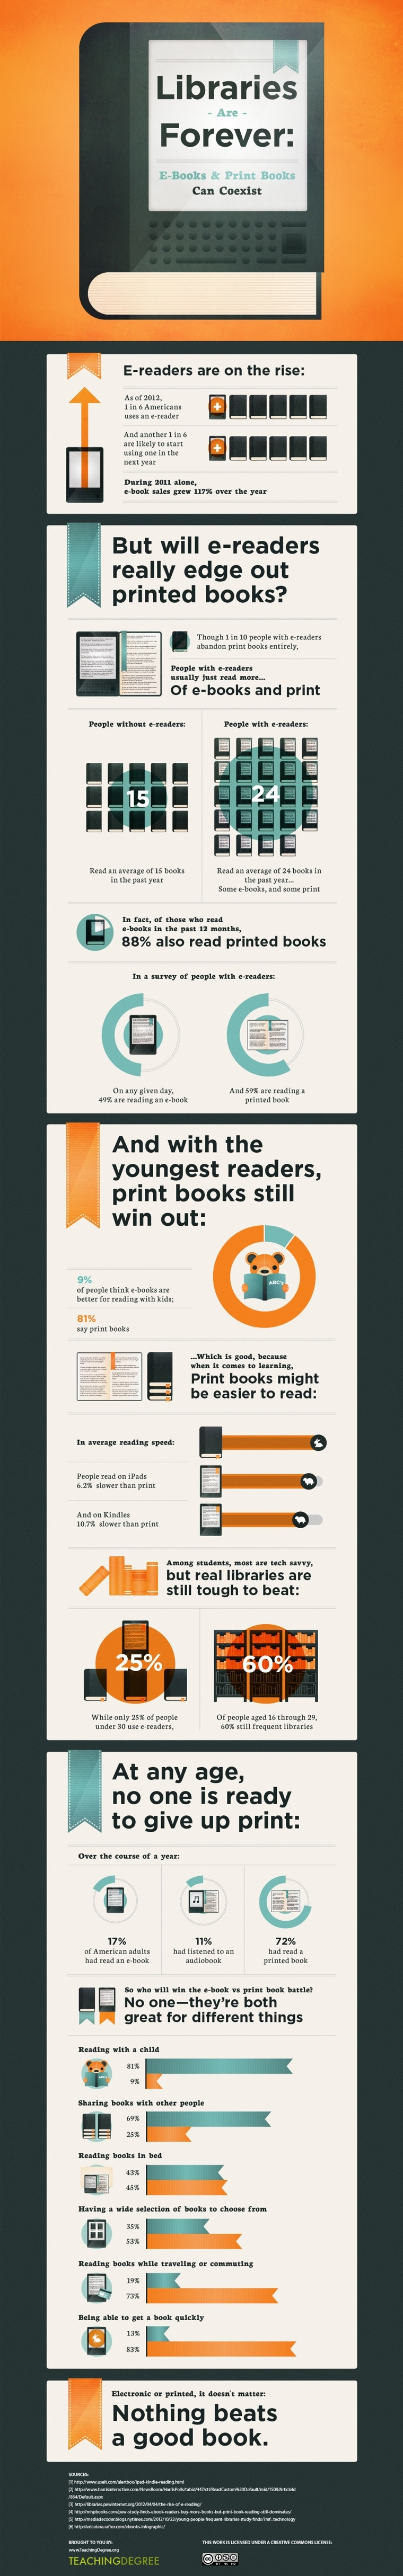 E-books and Paper Books Infrographic